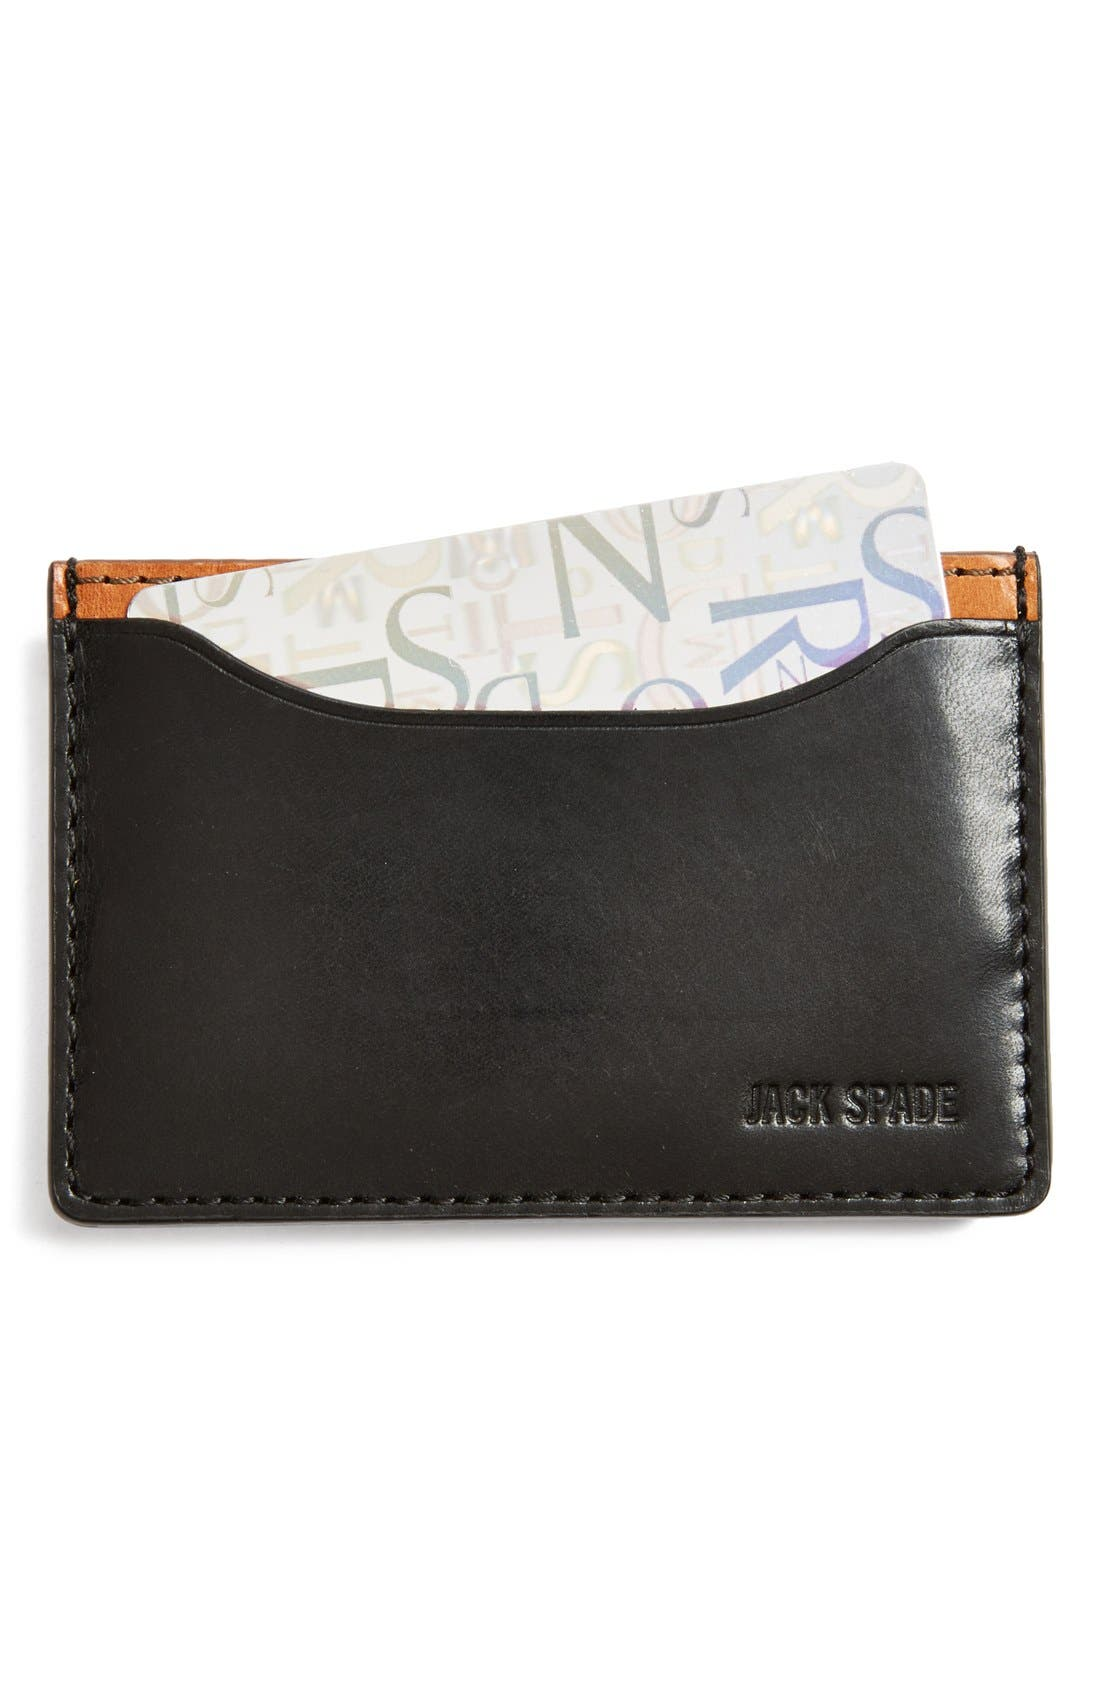 JACK SPADE 'Mitchell' Leather Card Holder, Main, color, 001